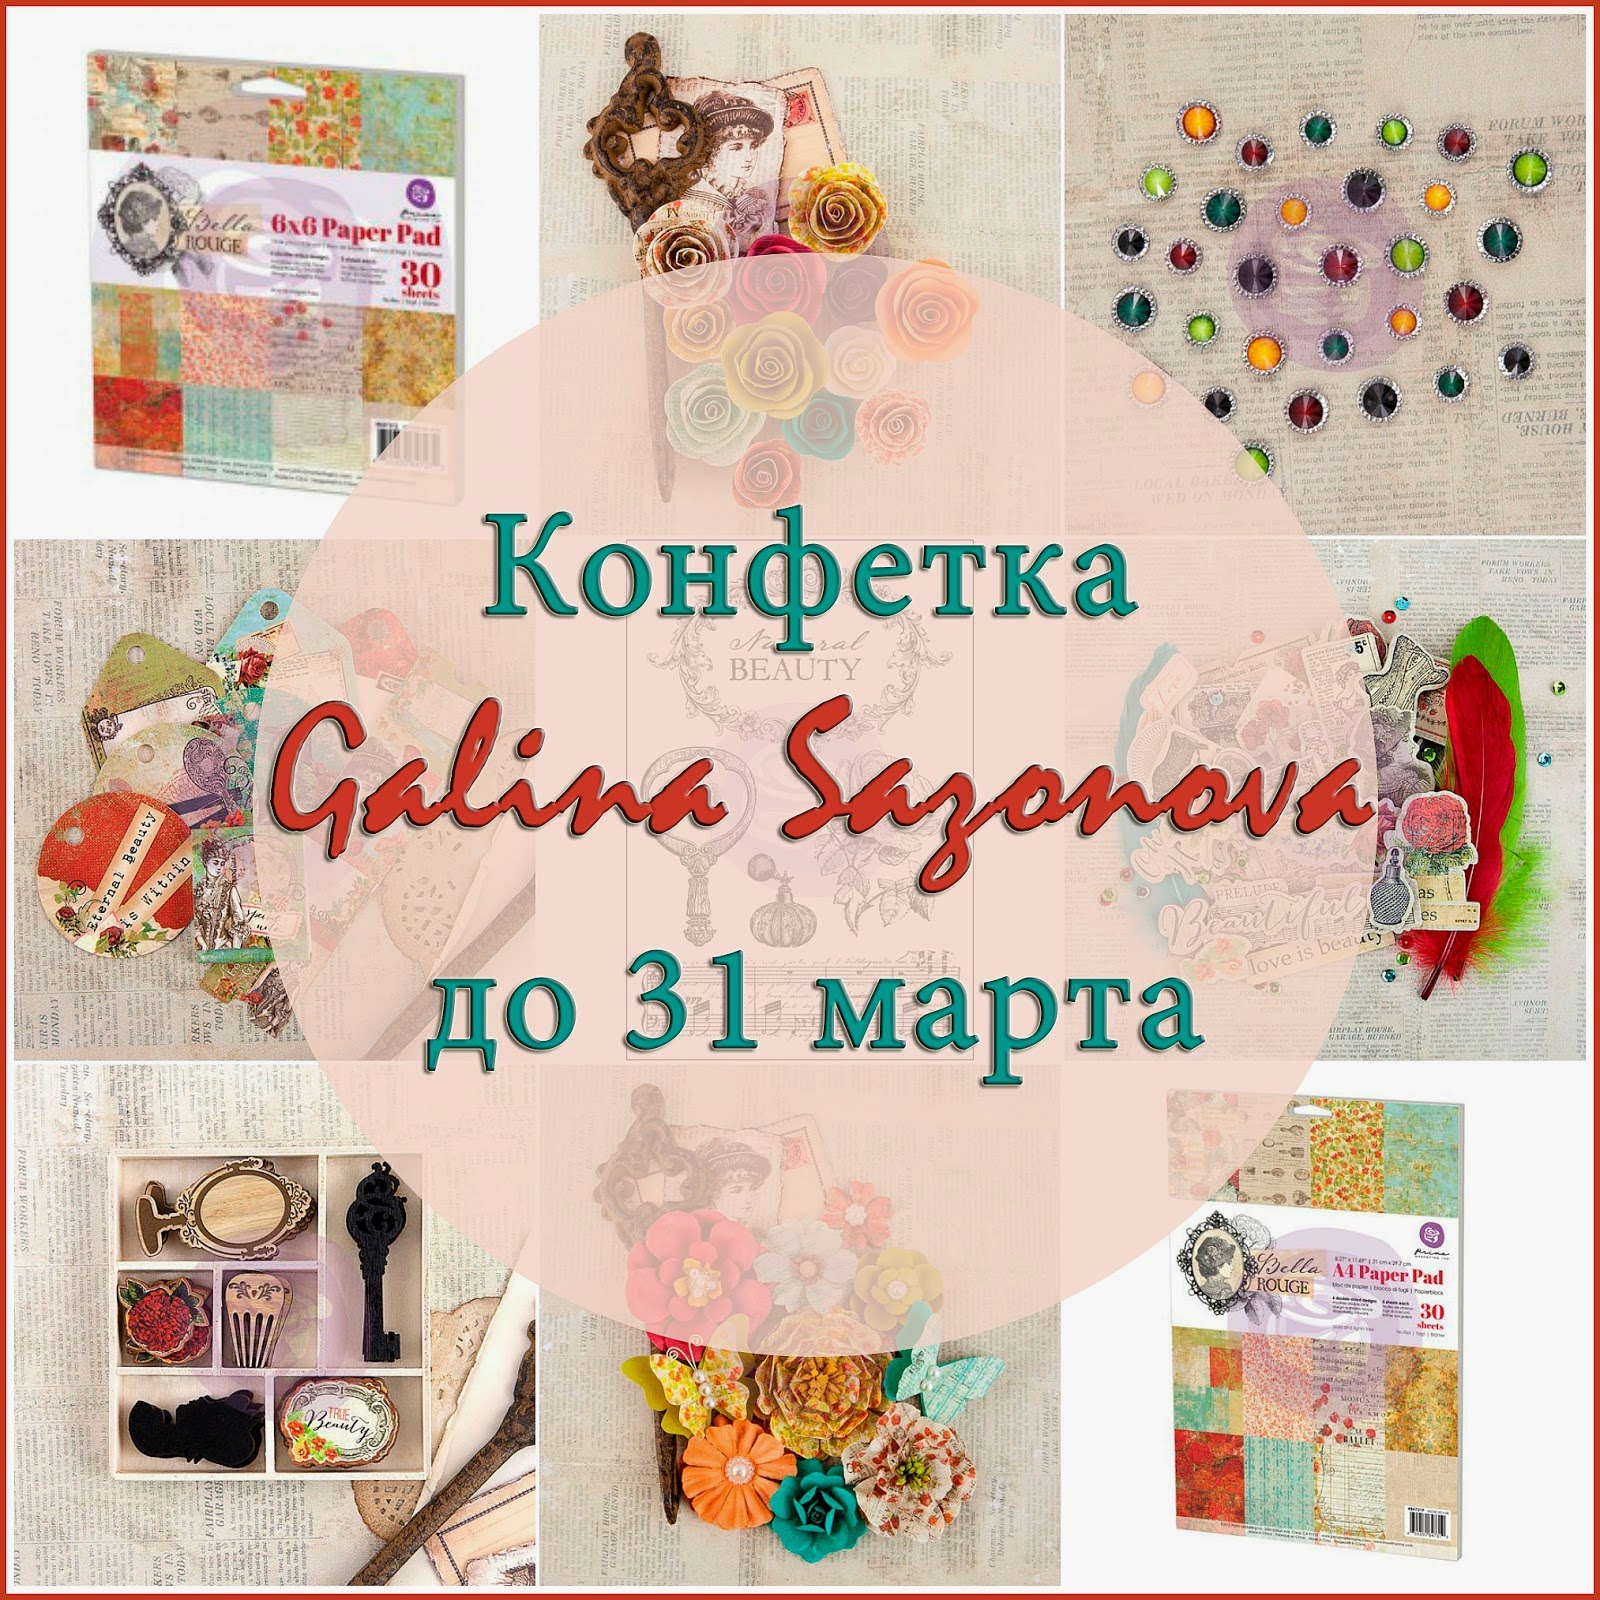 http://galadreams.blogspot.ru/2015/02/blog-post.html